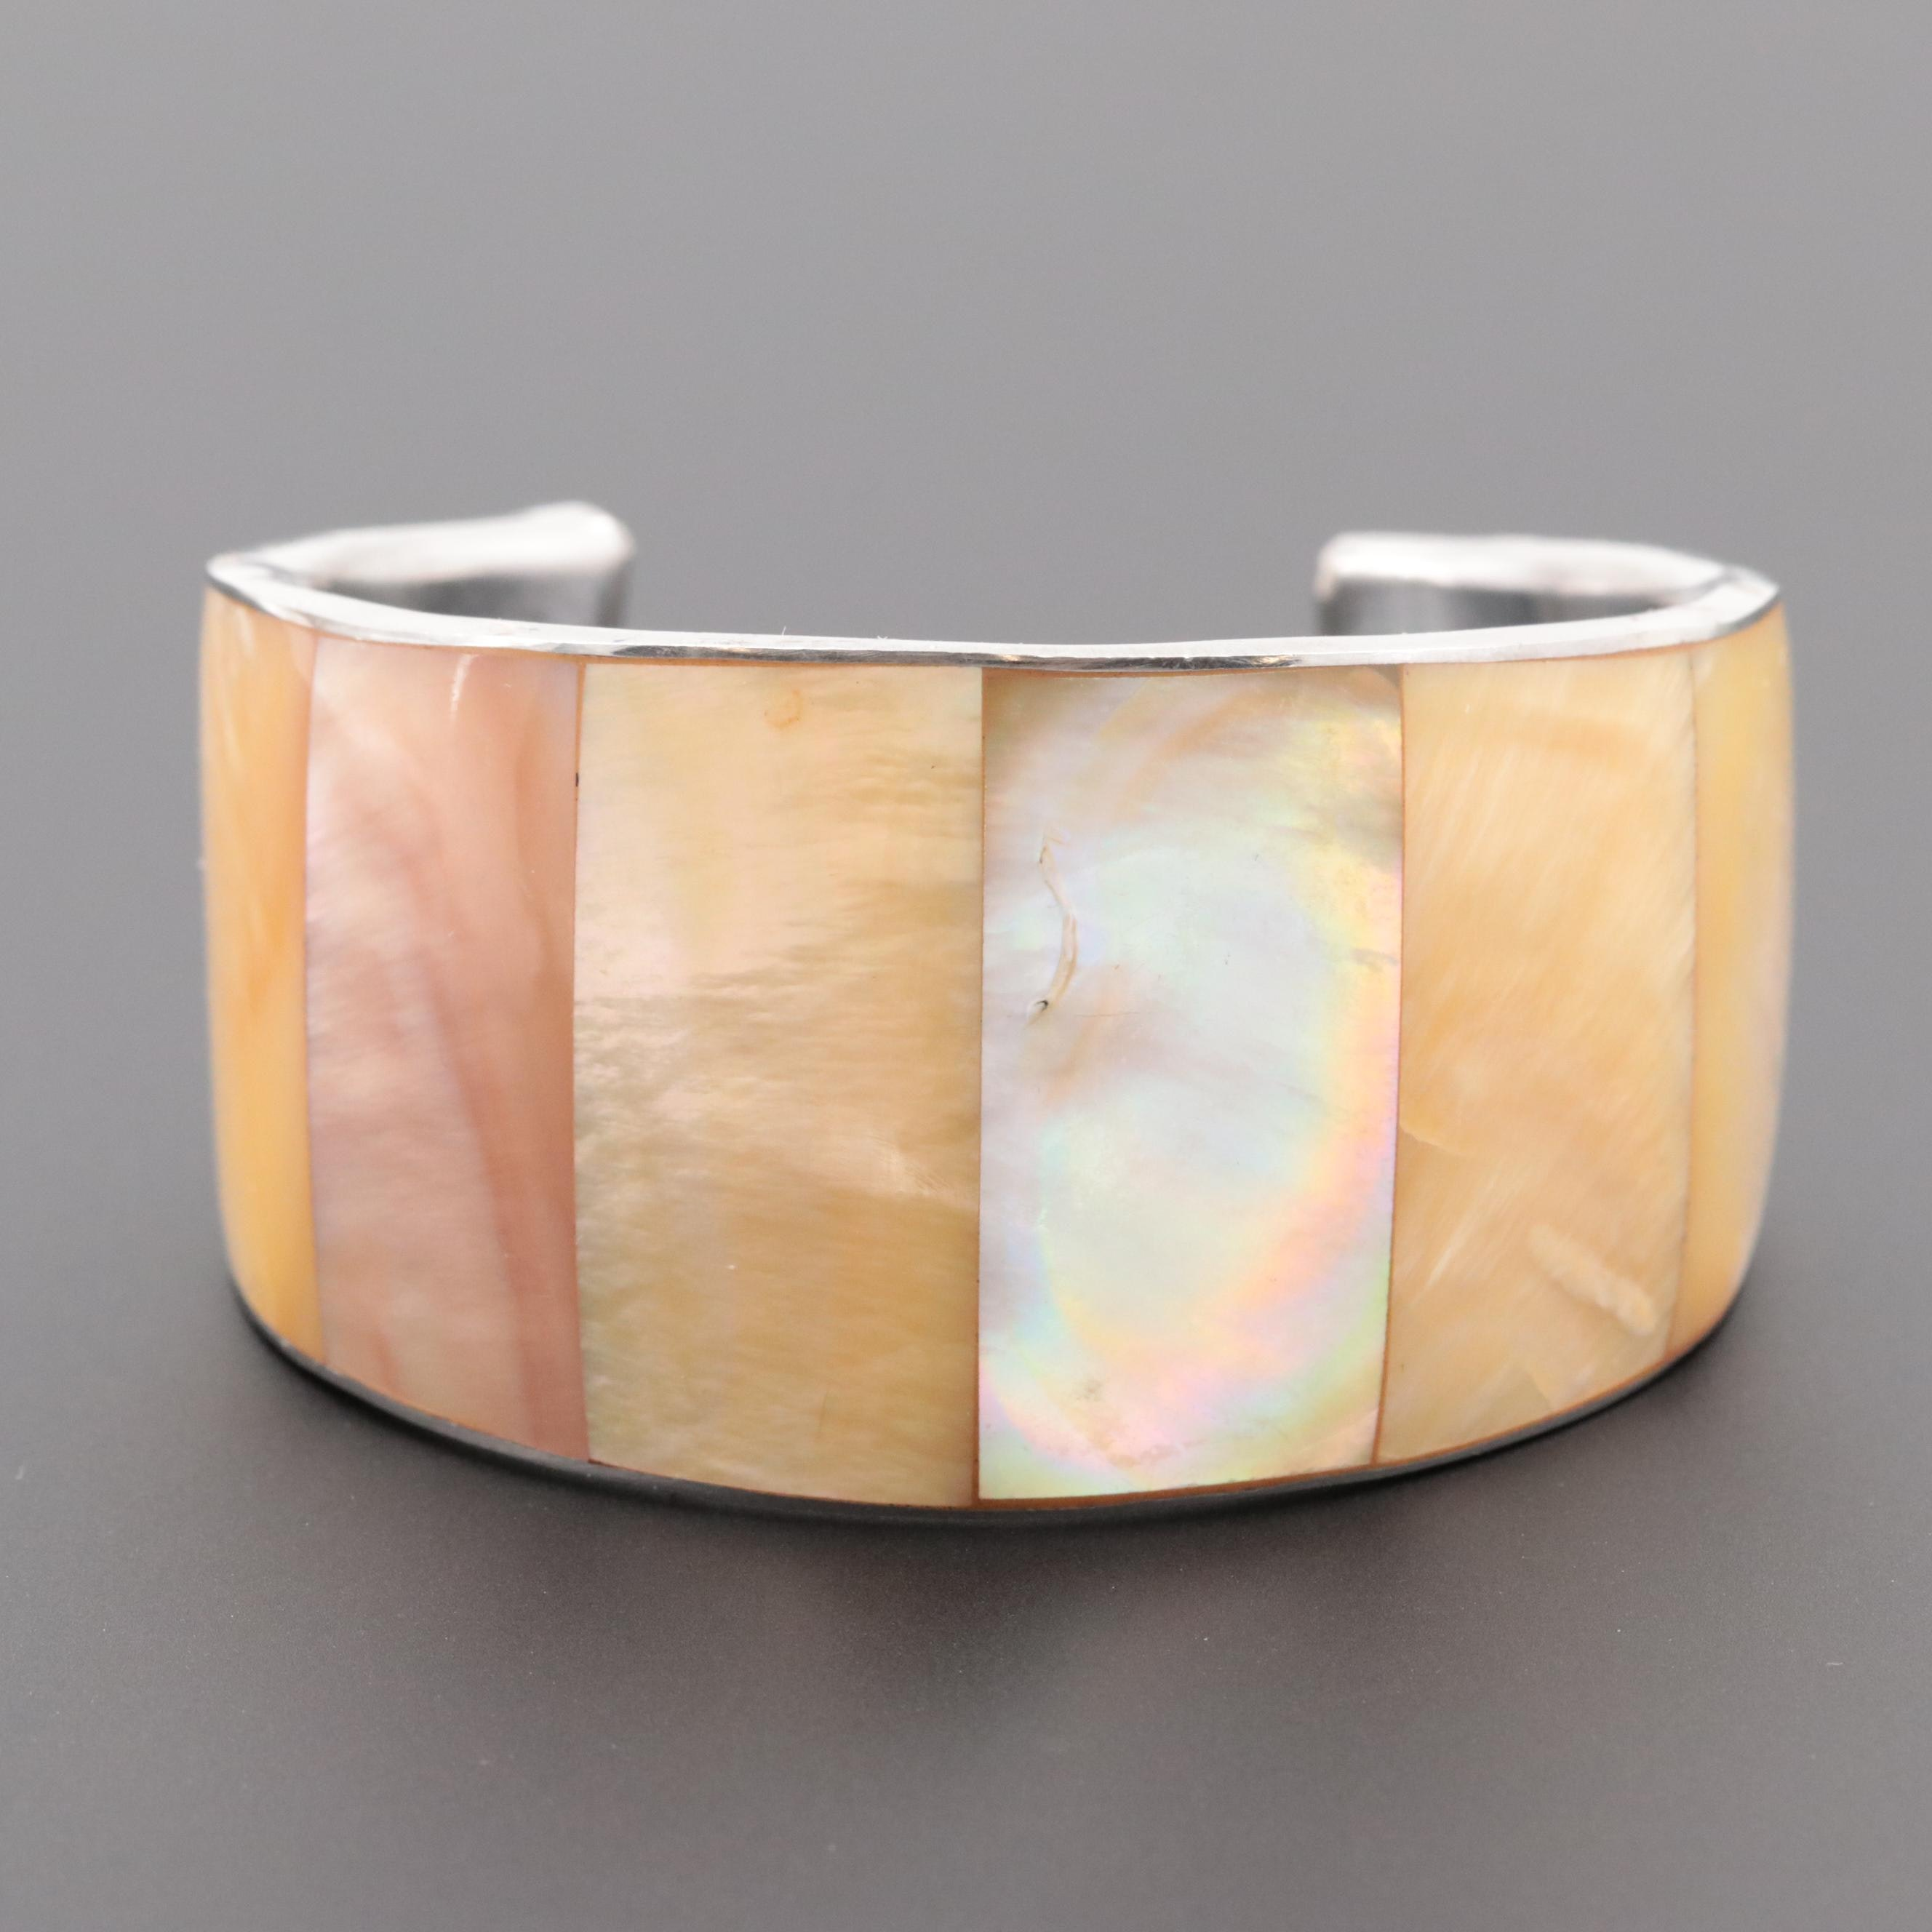 Silver Tone Mother of Pearl Cuff Bracelet